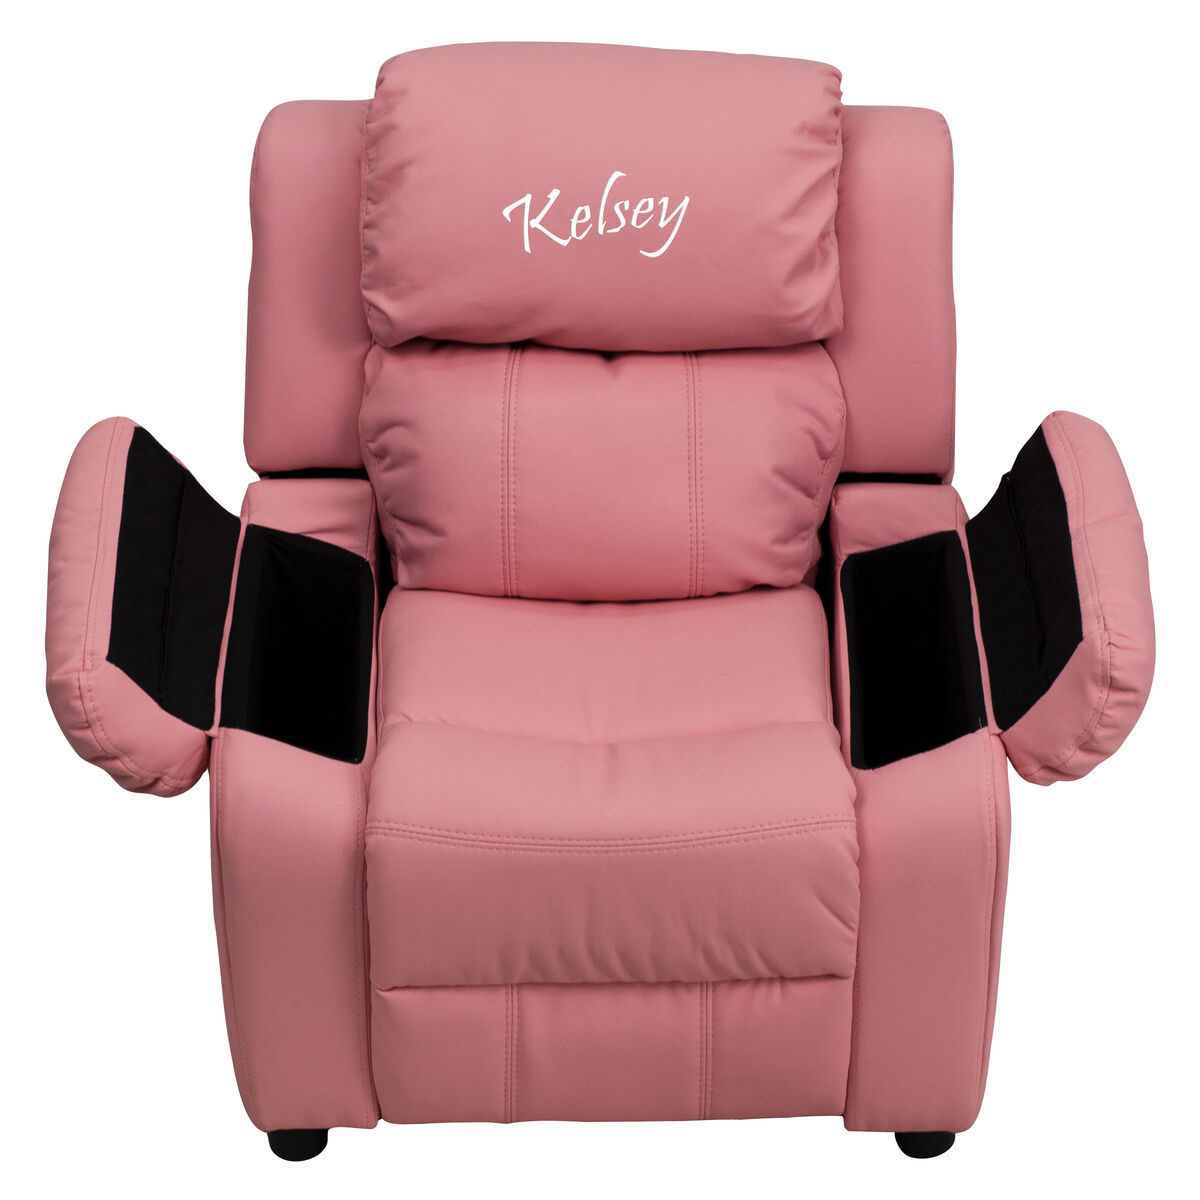 Flash furniture personalized deluxe padded pink vinyl kids for Toddler leather chair